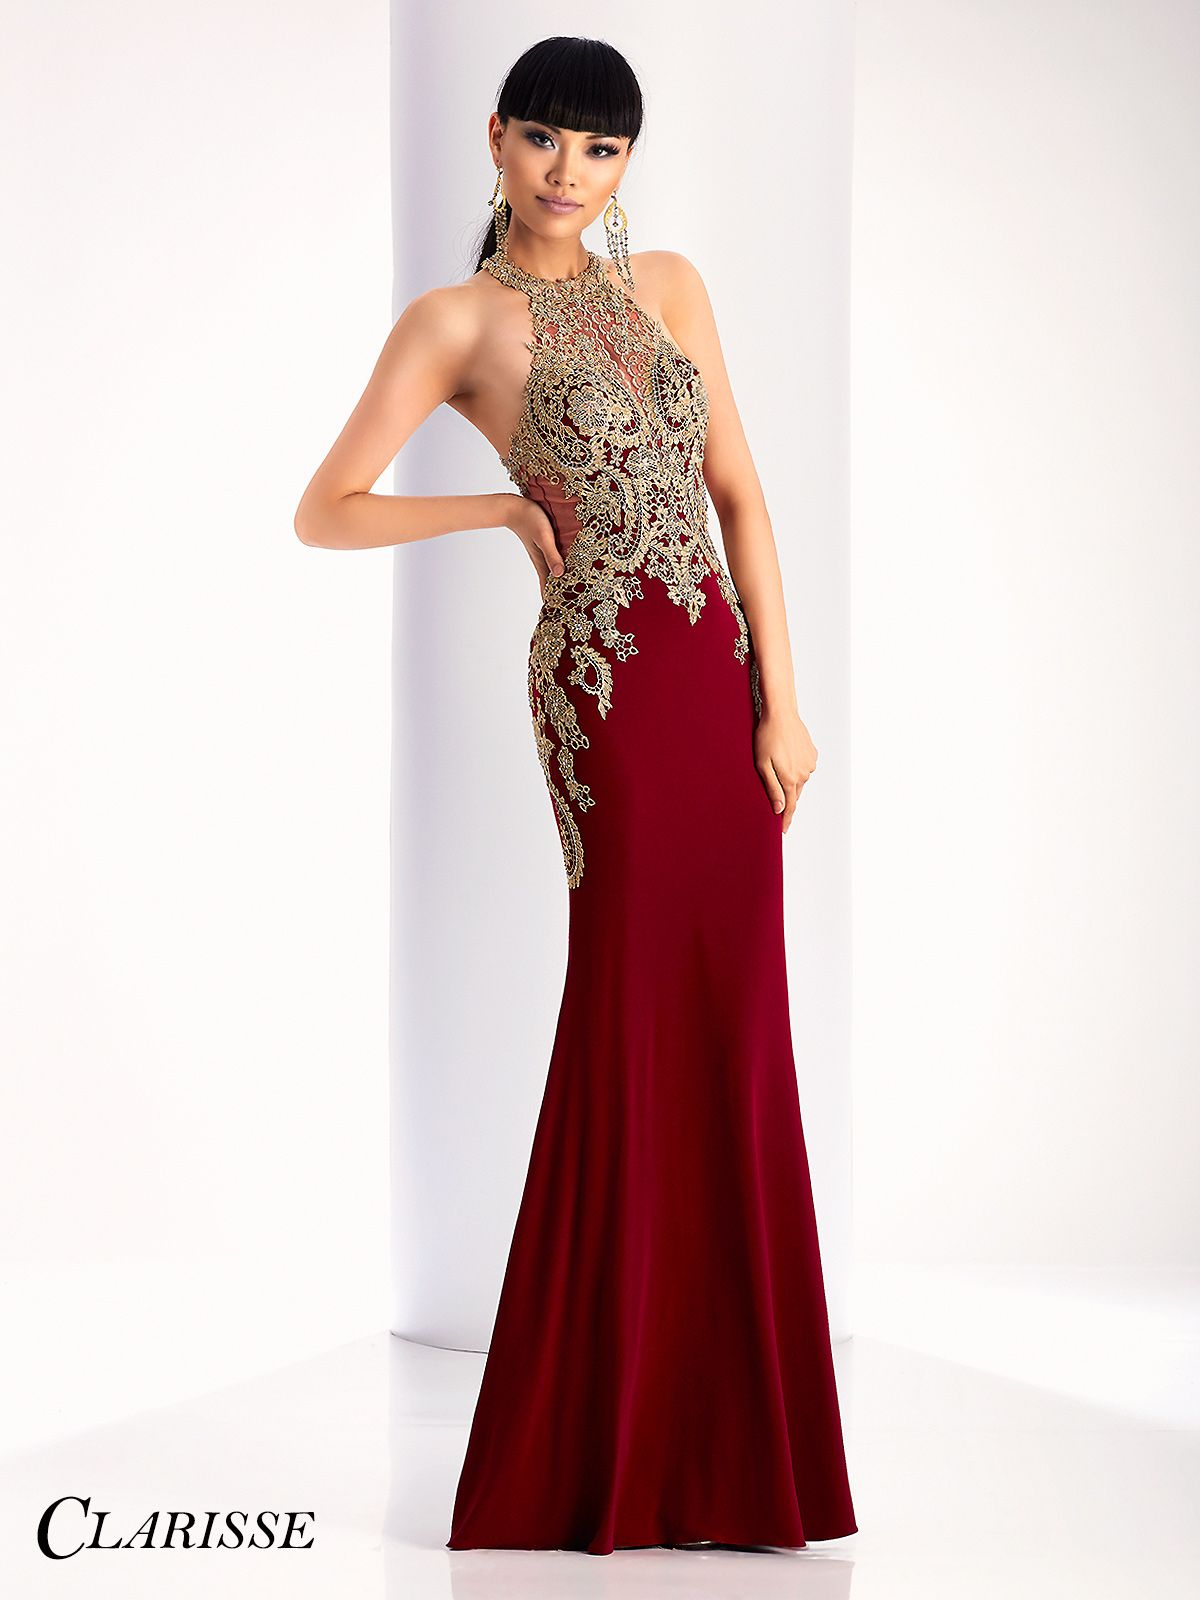 Clarisse Gold Lace Embellished Prom Dress 4819. Beautiful and elegant tight  fitted burgundy prom dress for 2017  470a7c5a8bb5